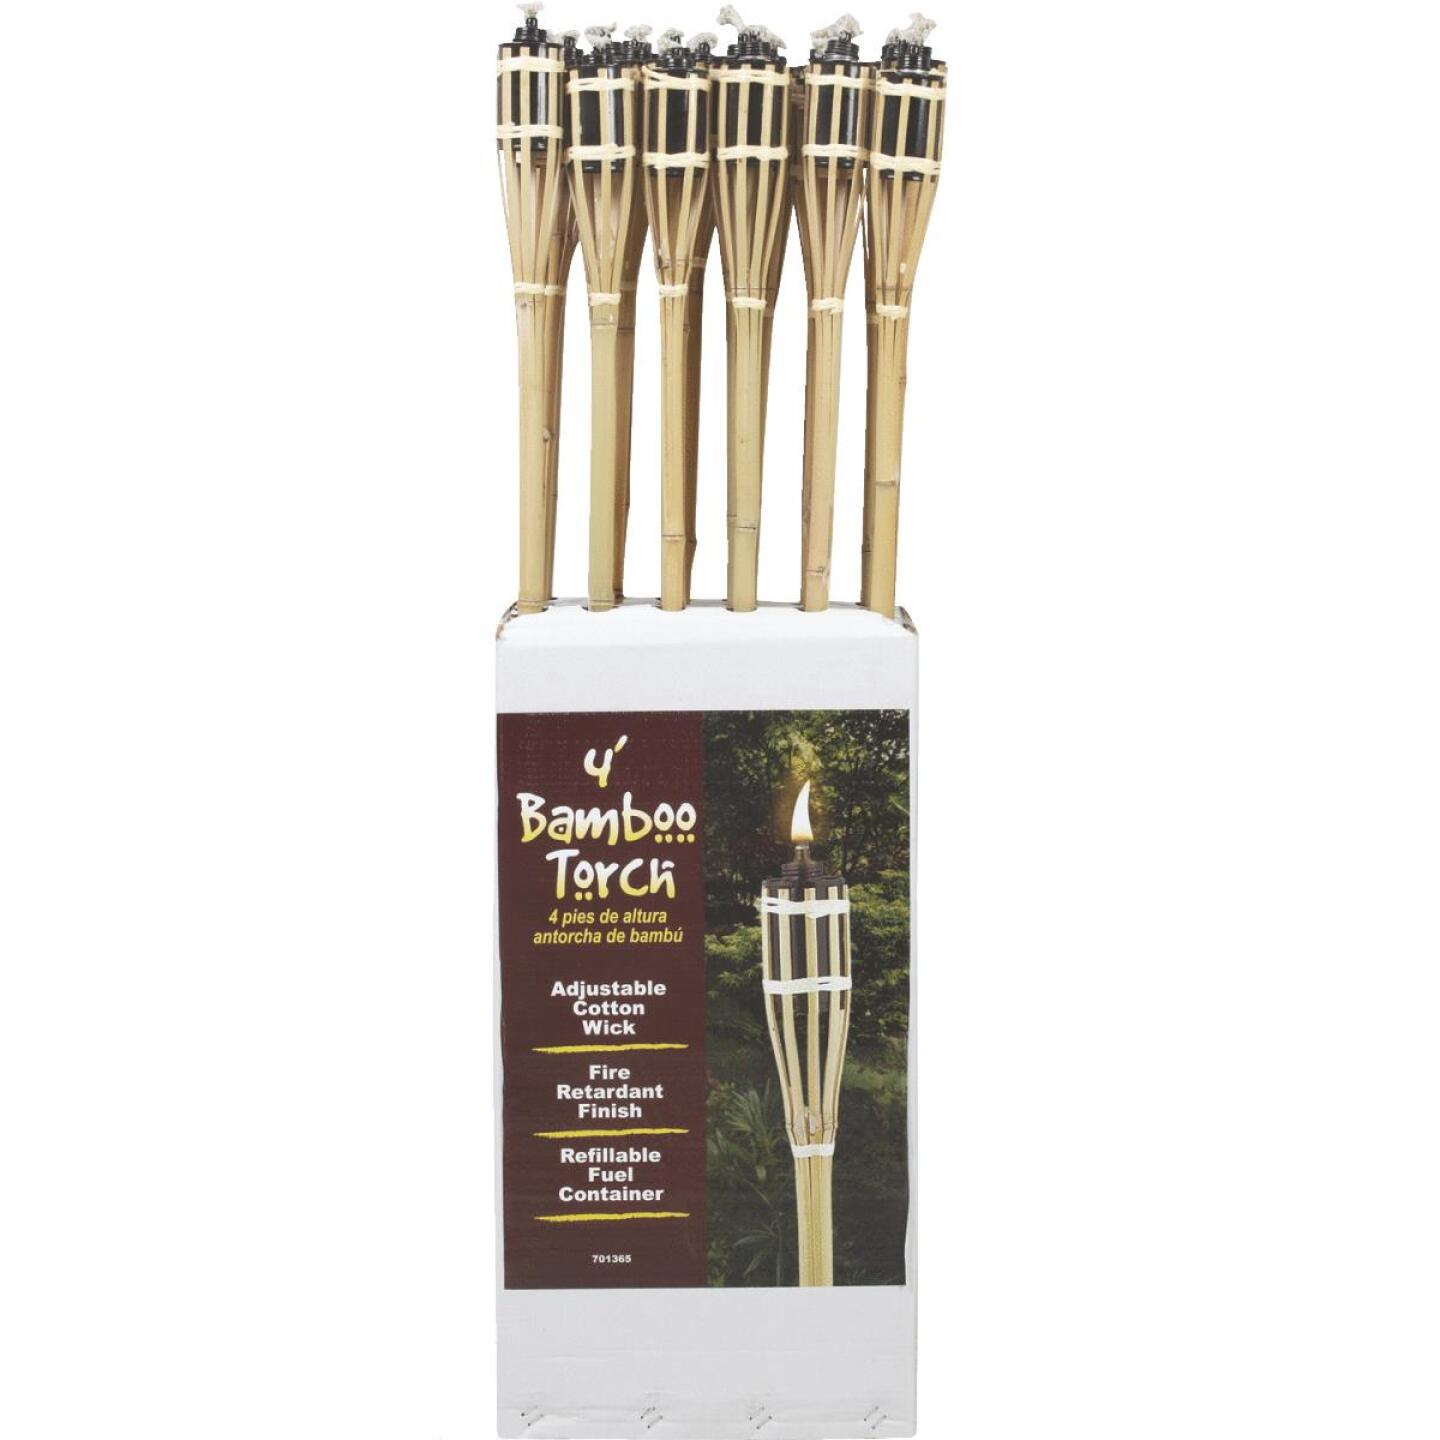 Outdoor Expressions 48 In. Natural Bamboo Patio Torch Image 2